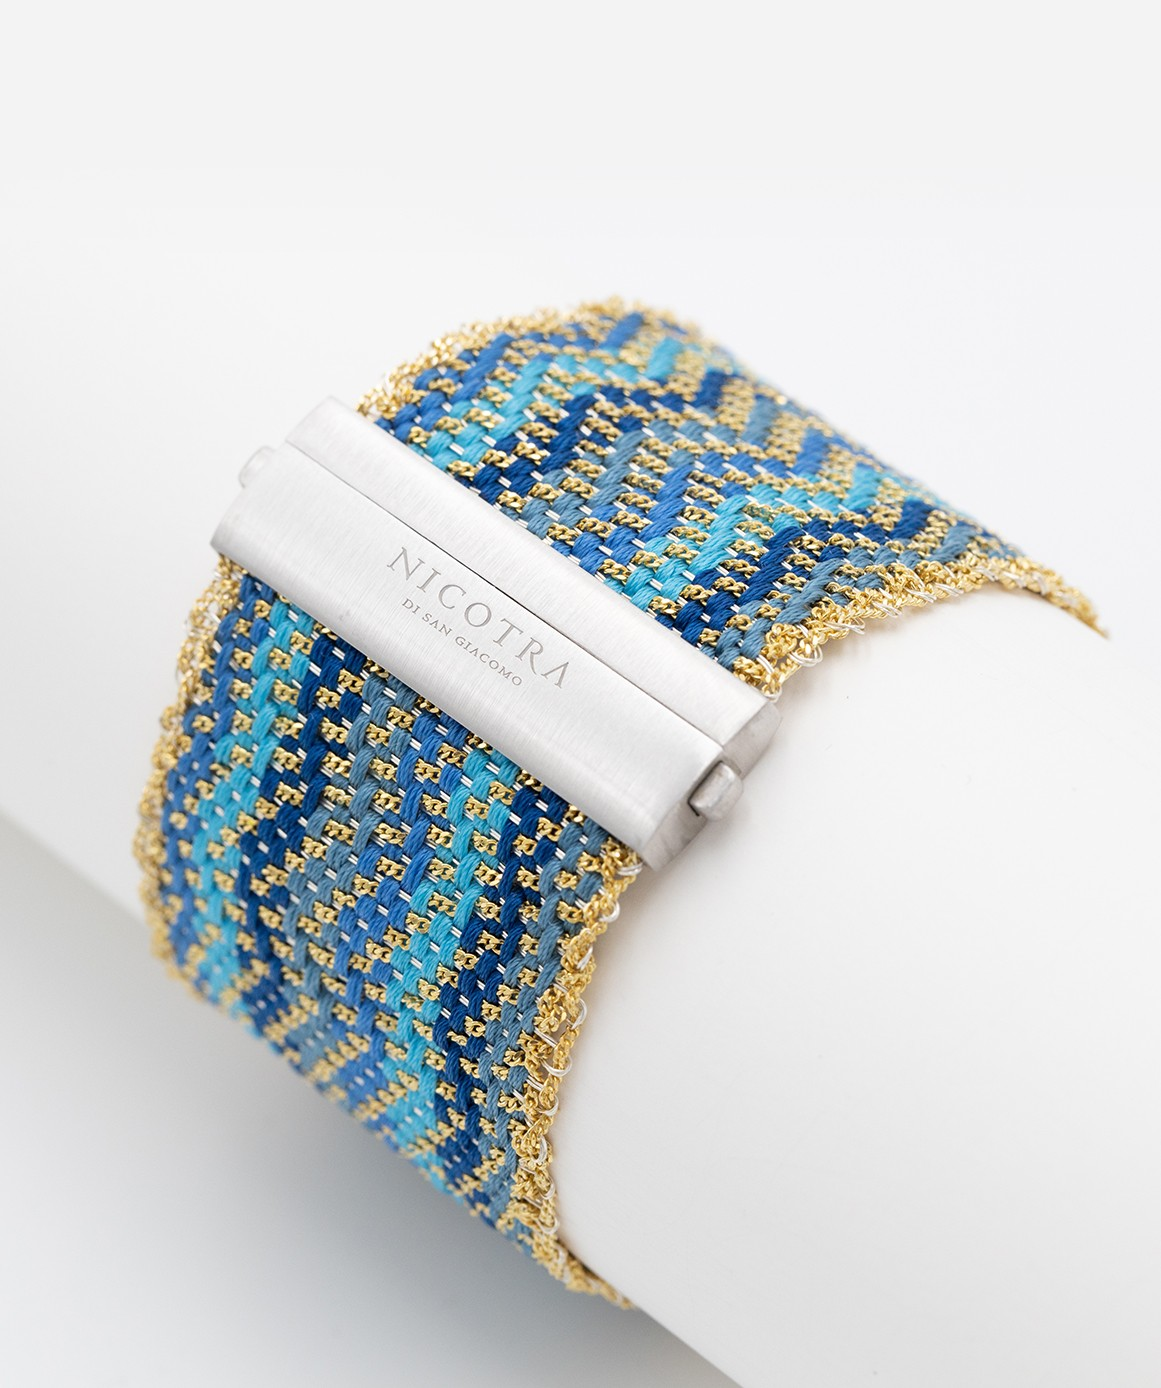 ZIG ZAG Bracelet in Sterling Silver 18Kt. Gold plated. Fabric: Silk Shades of Blue